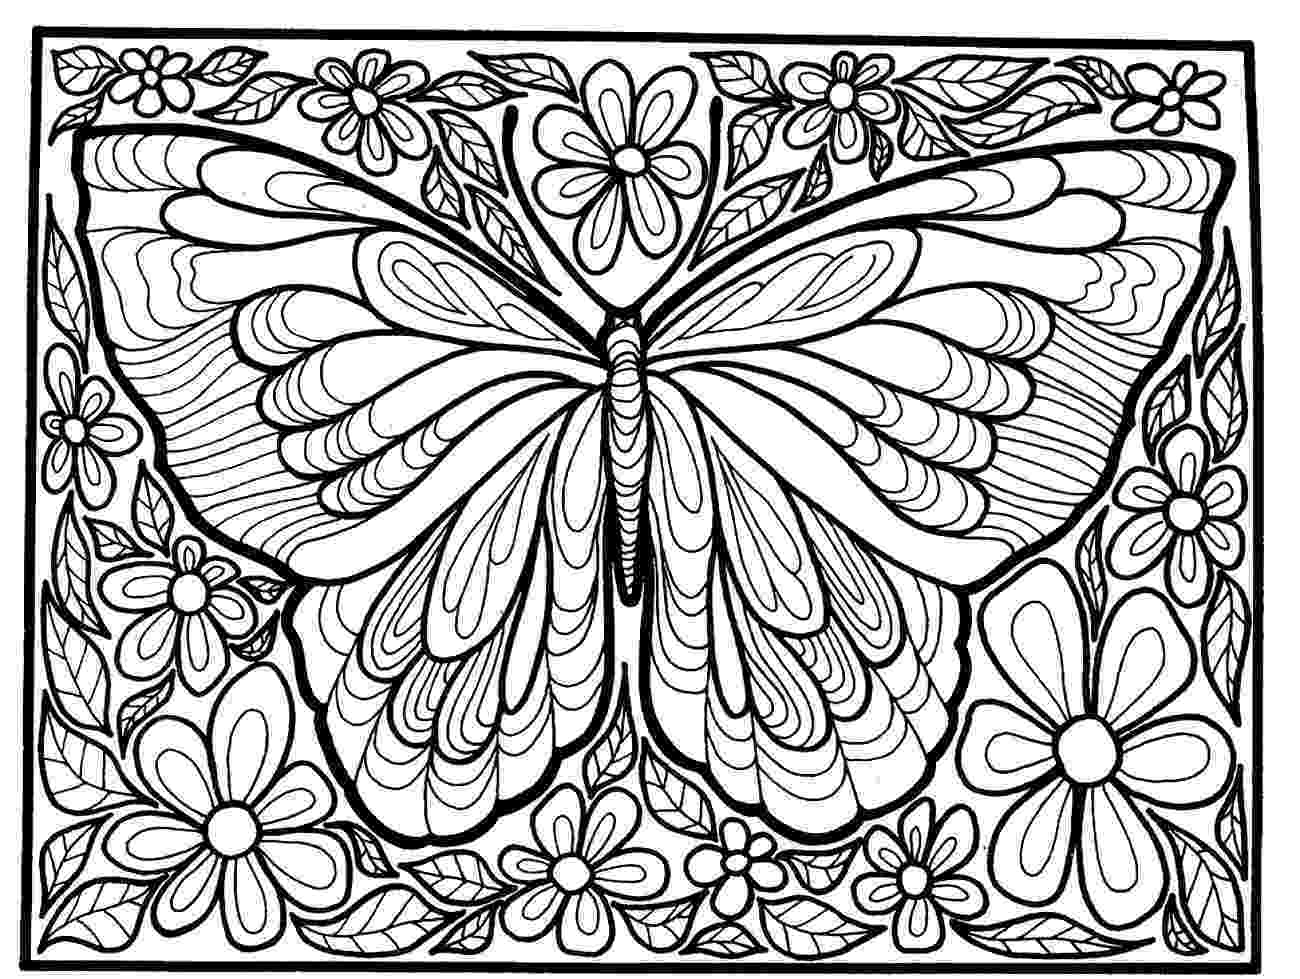 butterfly coloring pages free printable free printable butterfly coloring pages for kids pages free coloring butterfly printable